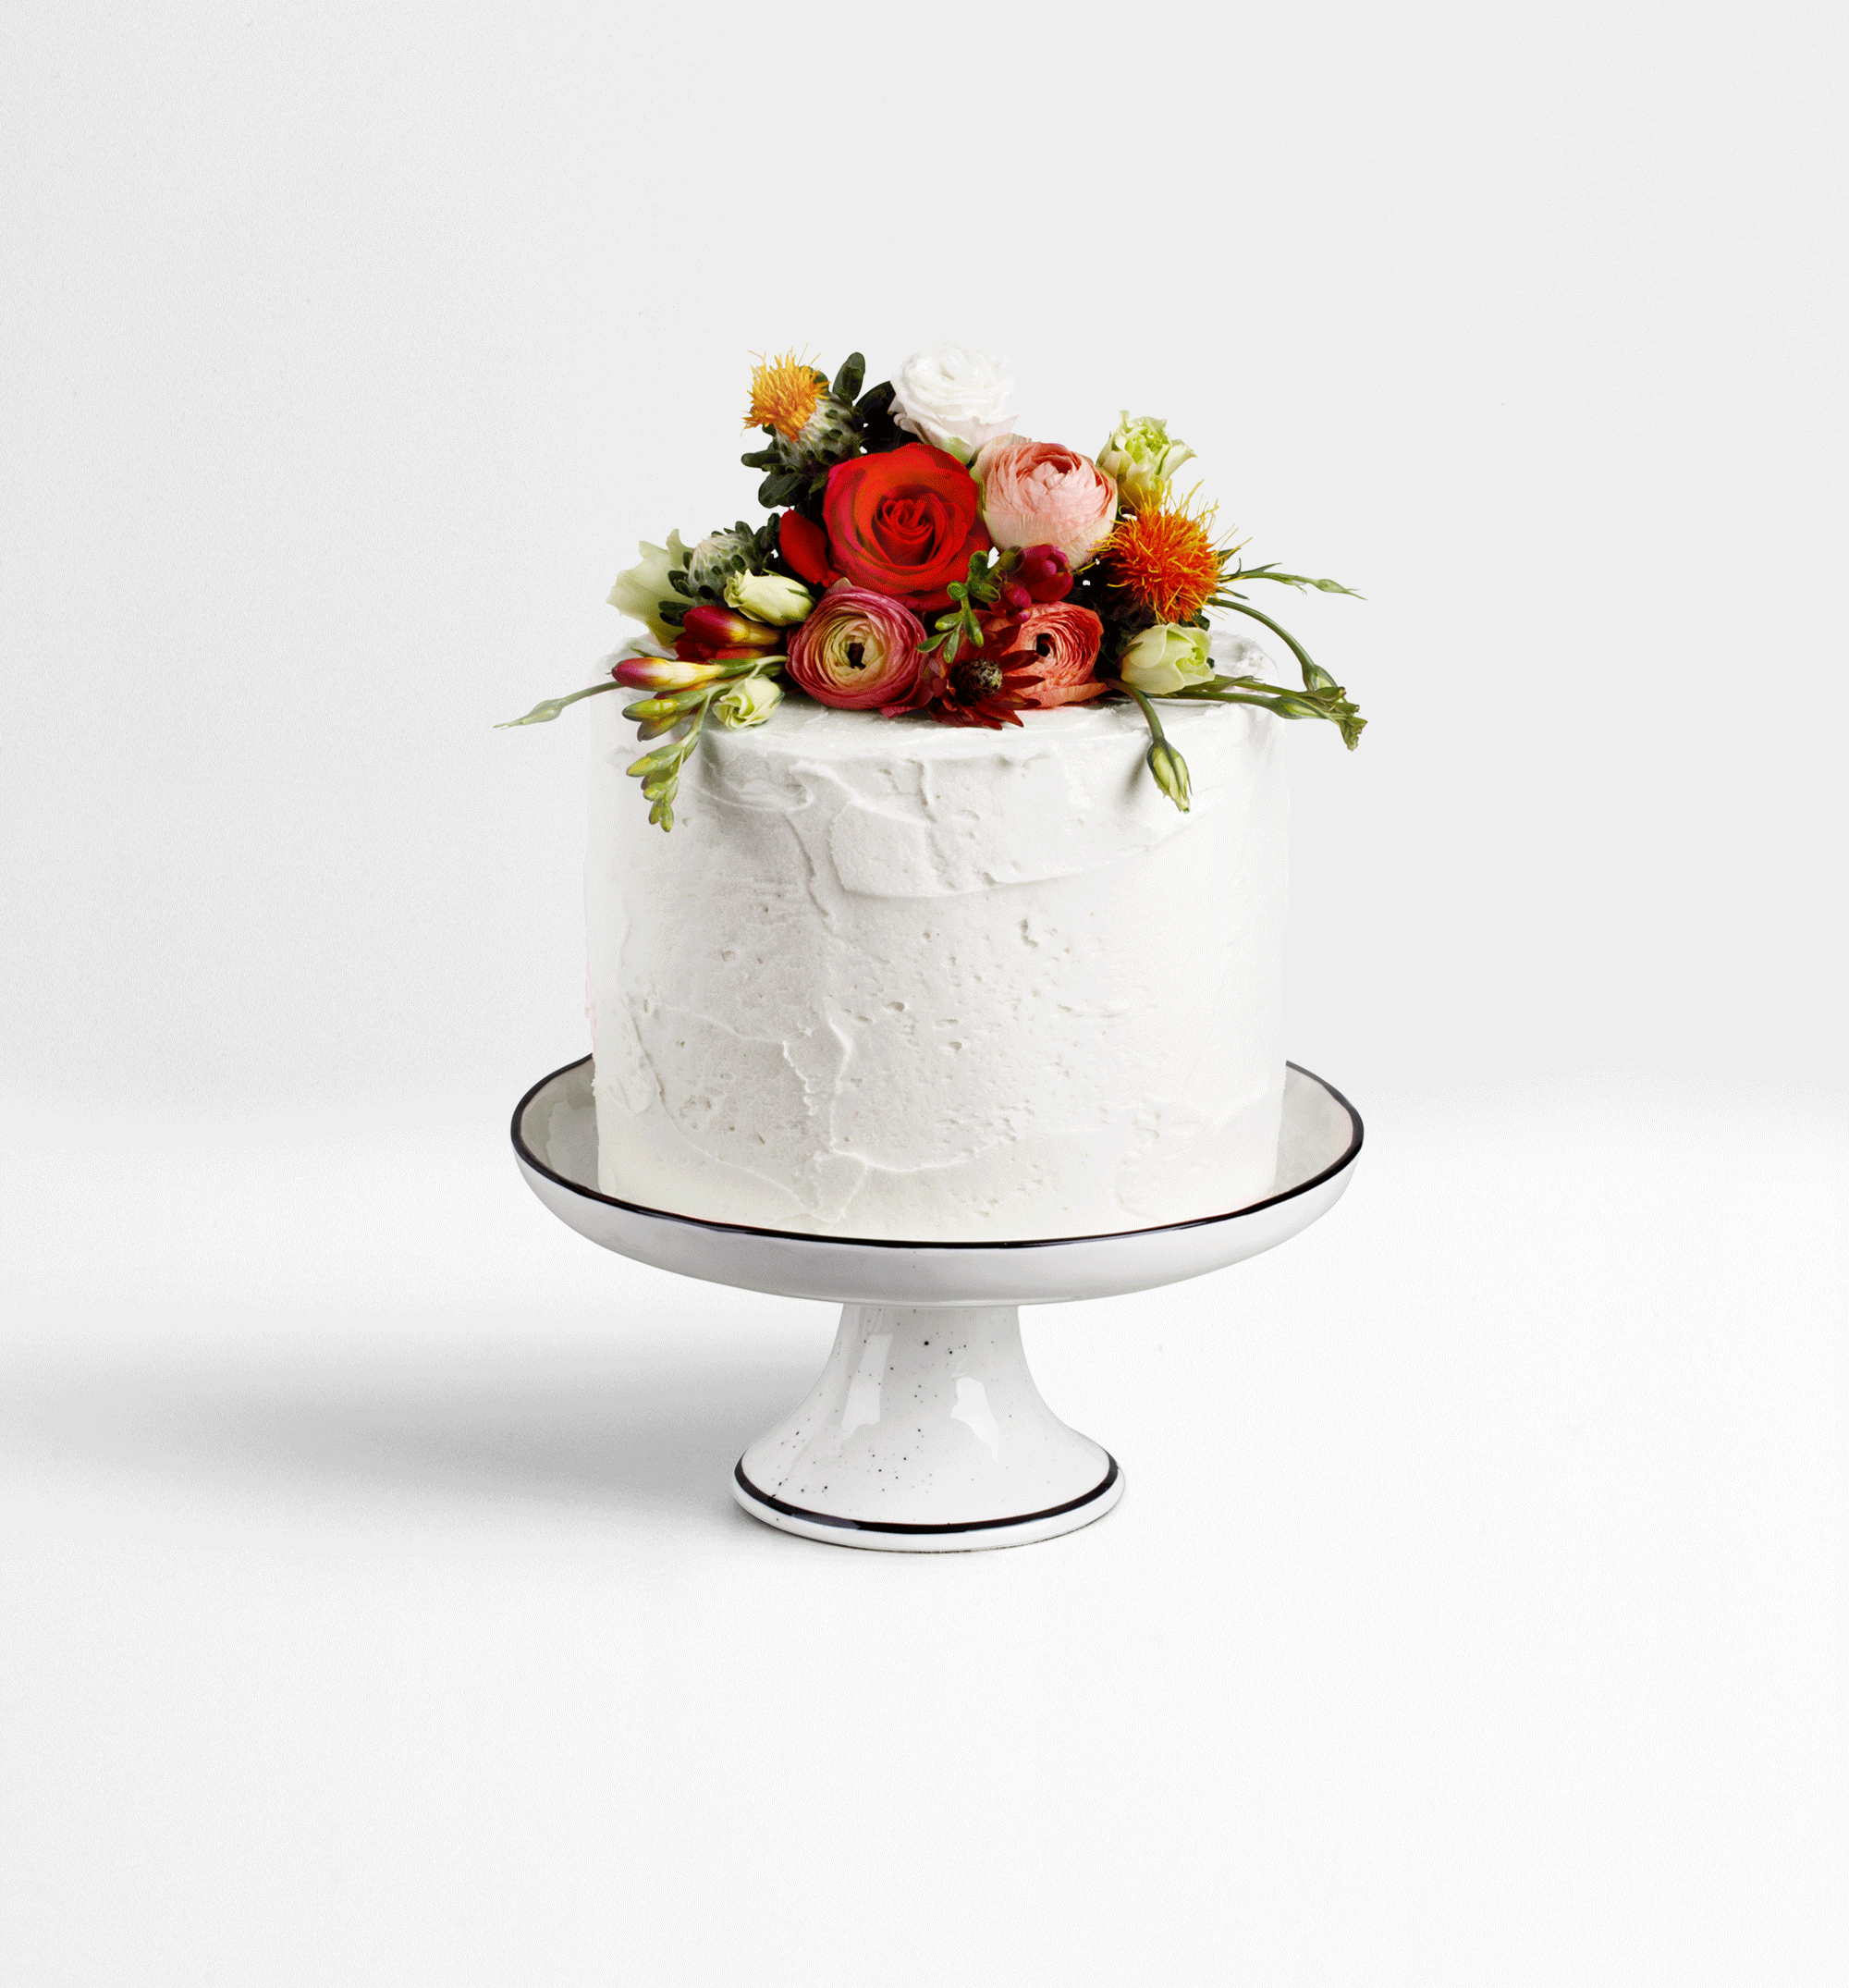 Wedding white cake & red flowers